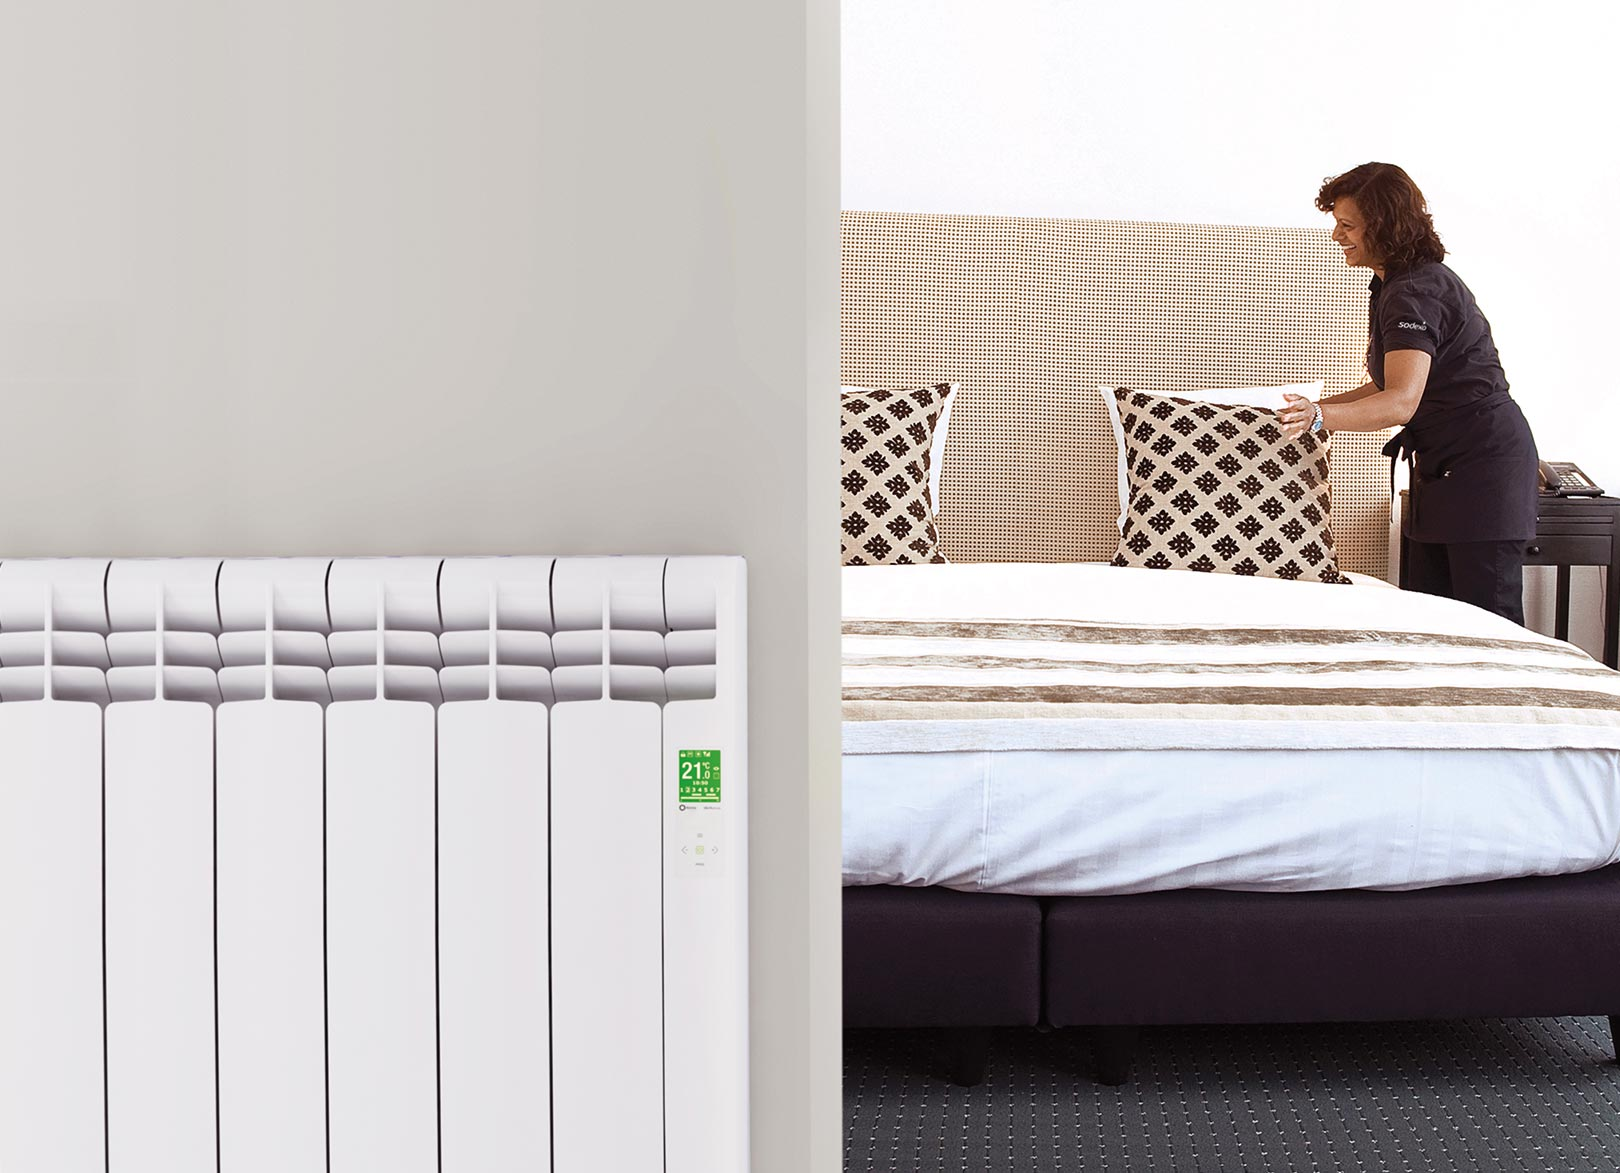 Rointe D Series WiFi electric radiator in a hotel bedroom